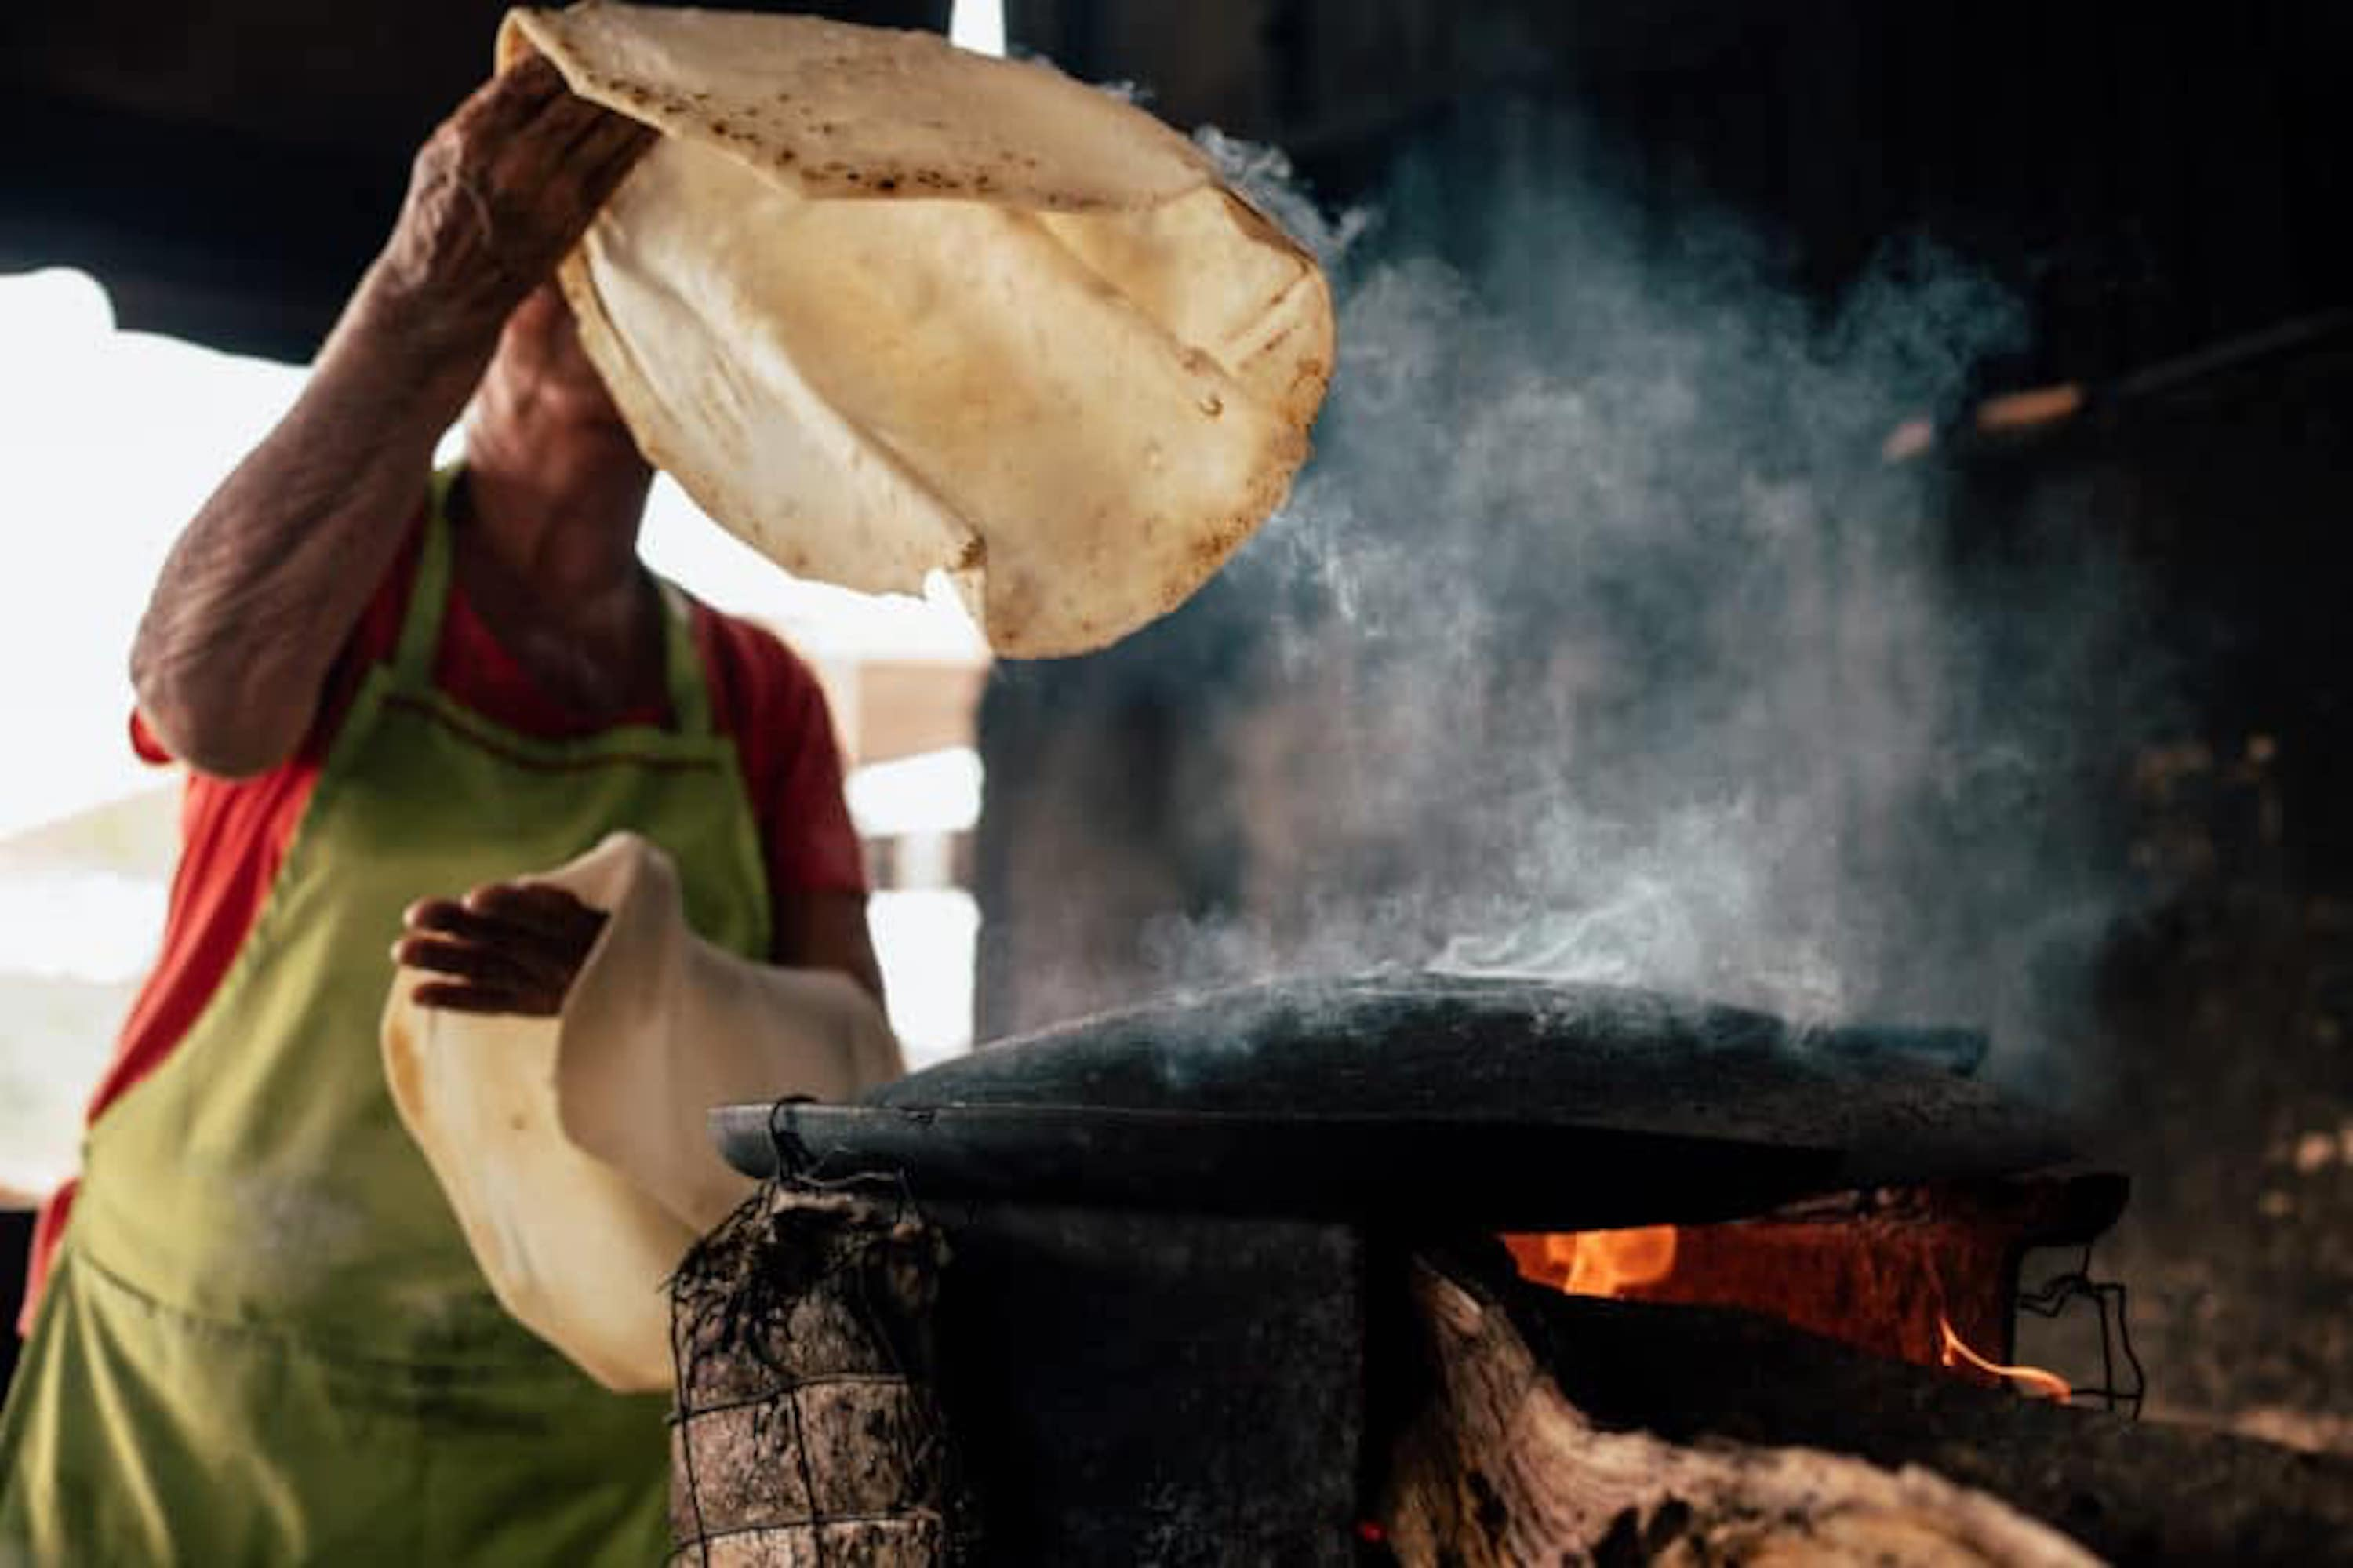 A tortilla being flipped for a burrito over a smoking comal in Mexico on Taco Chronicles on Netflix